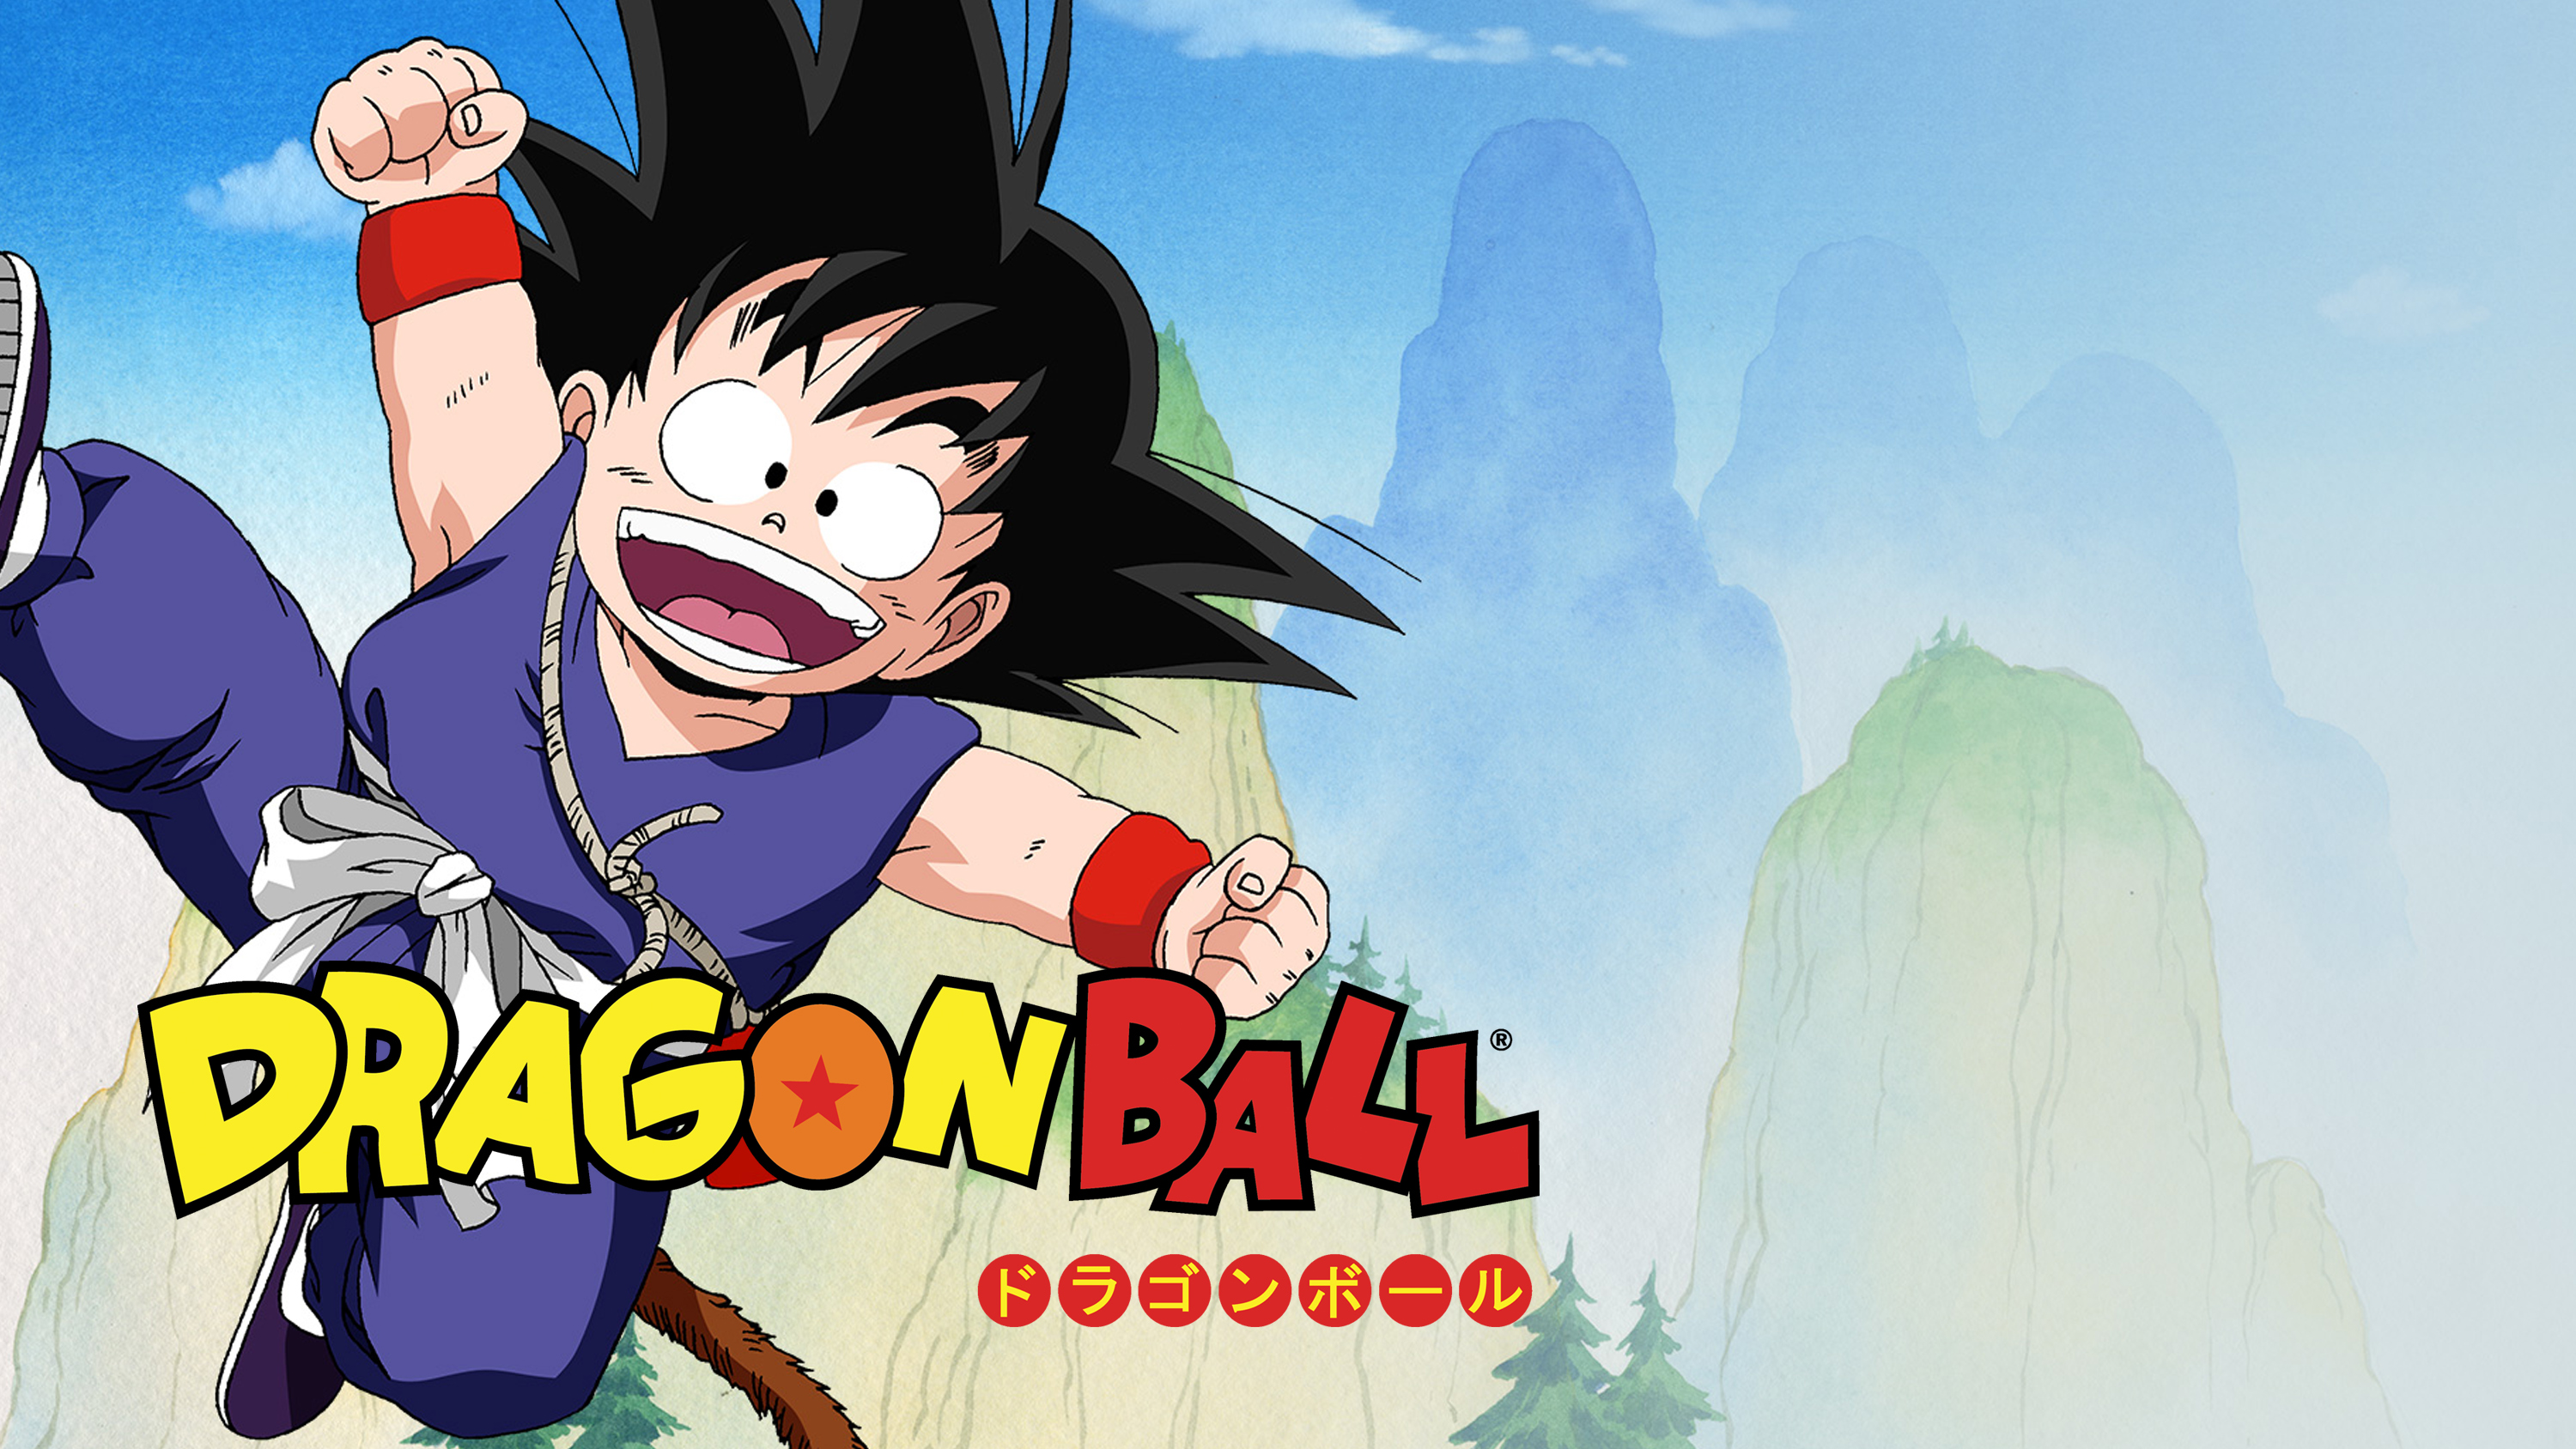 dragon ball gt season 1 torrent download